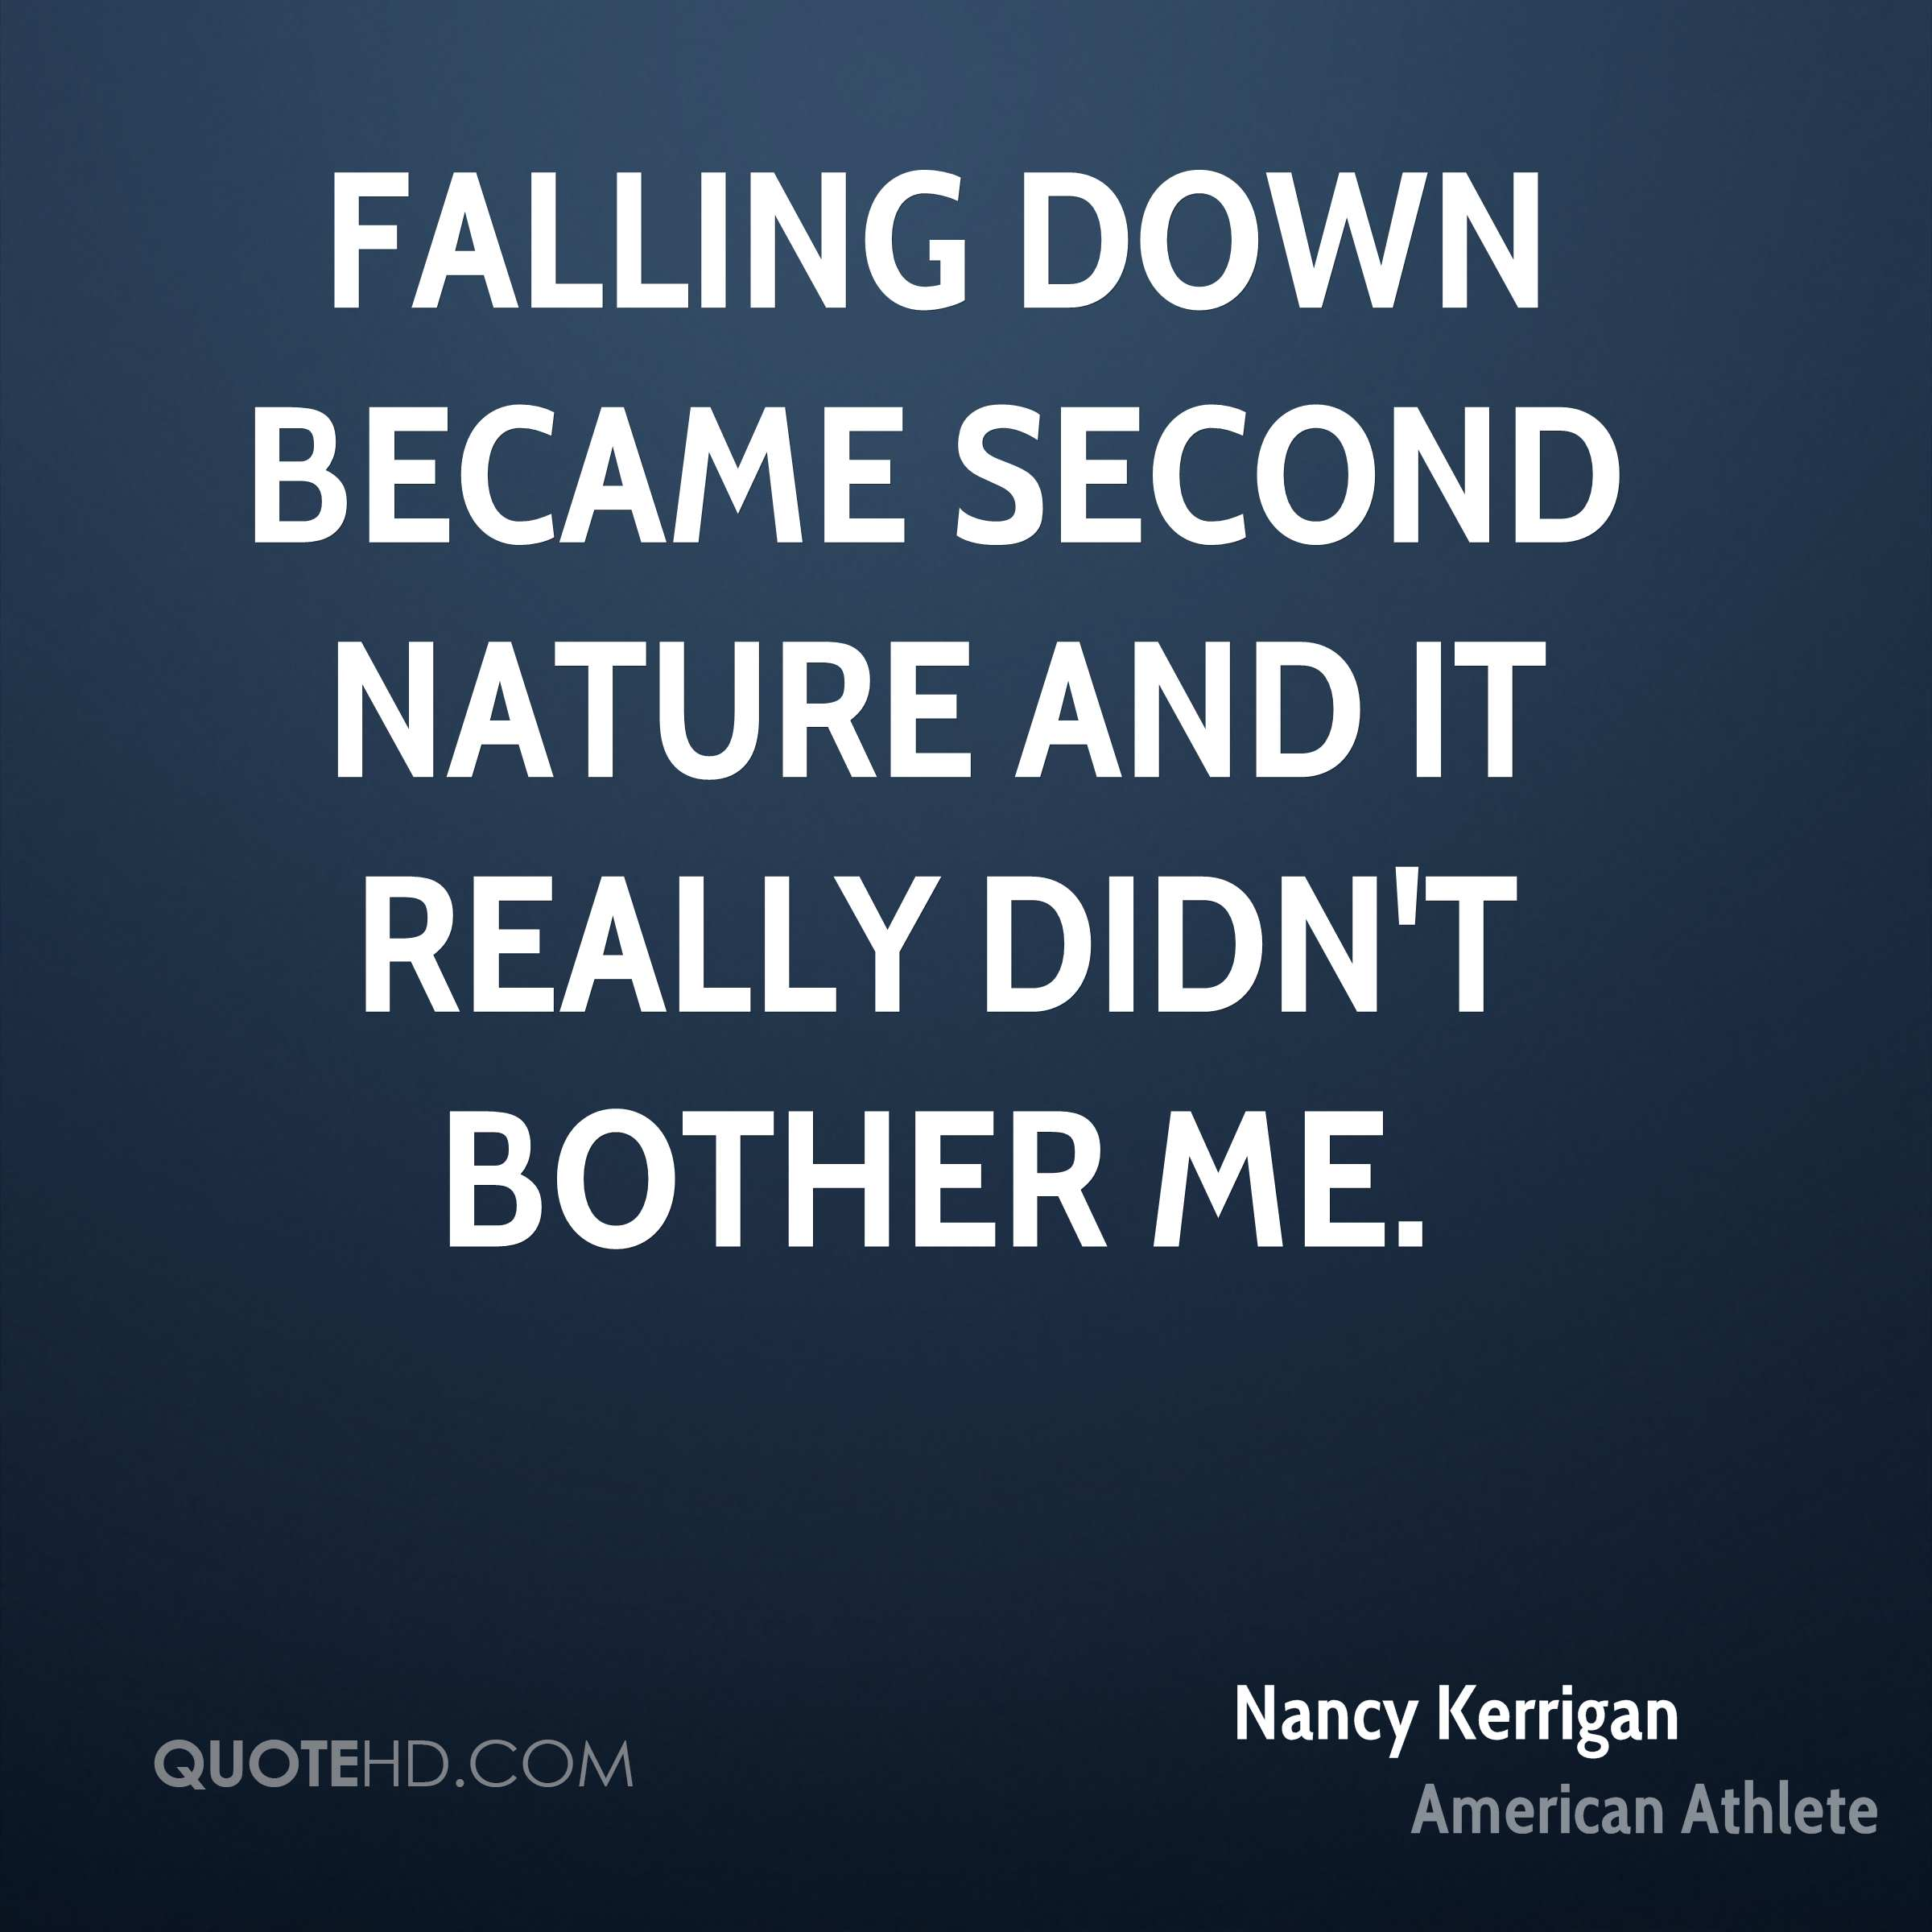 Falling down became second nature and it really didn't bother me.